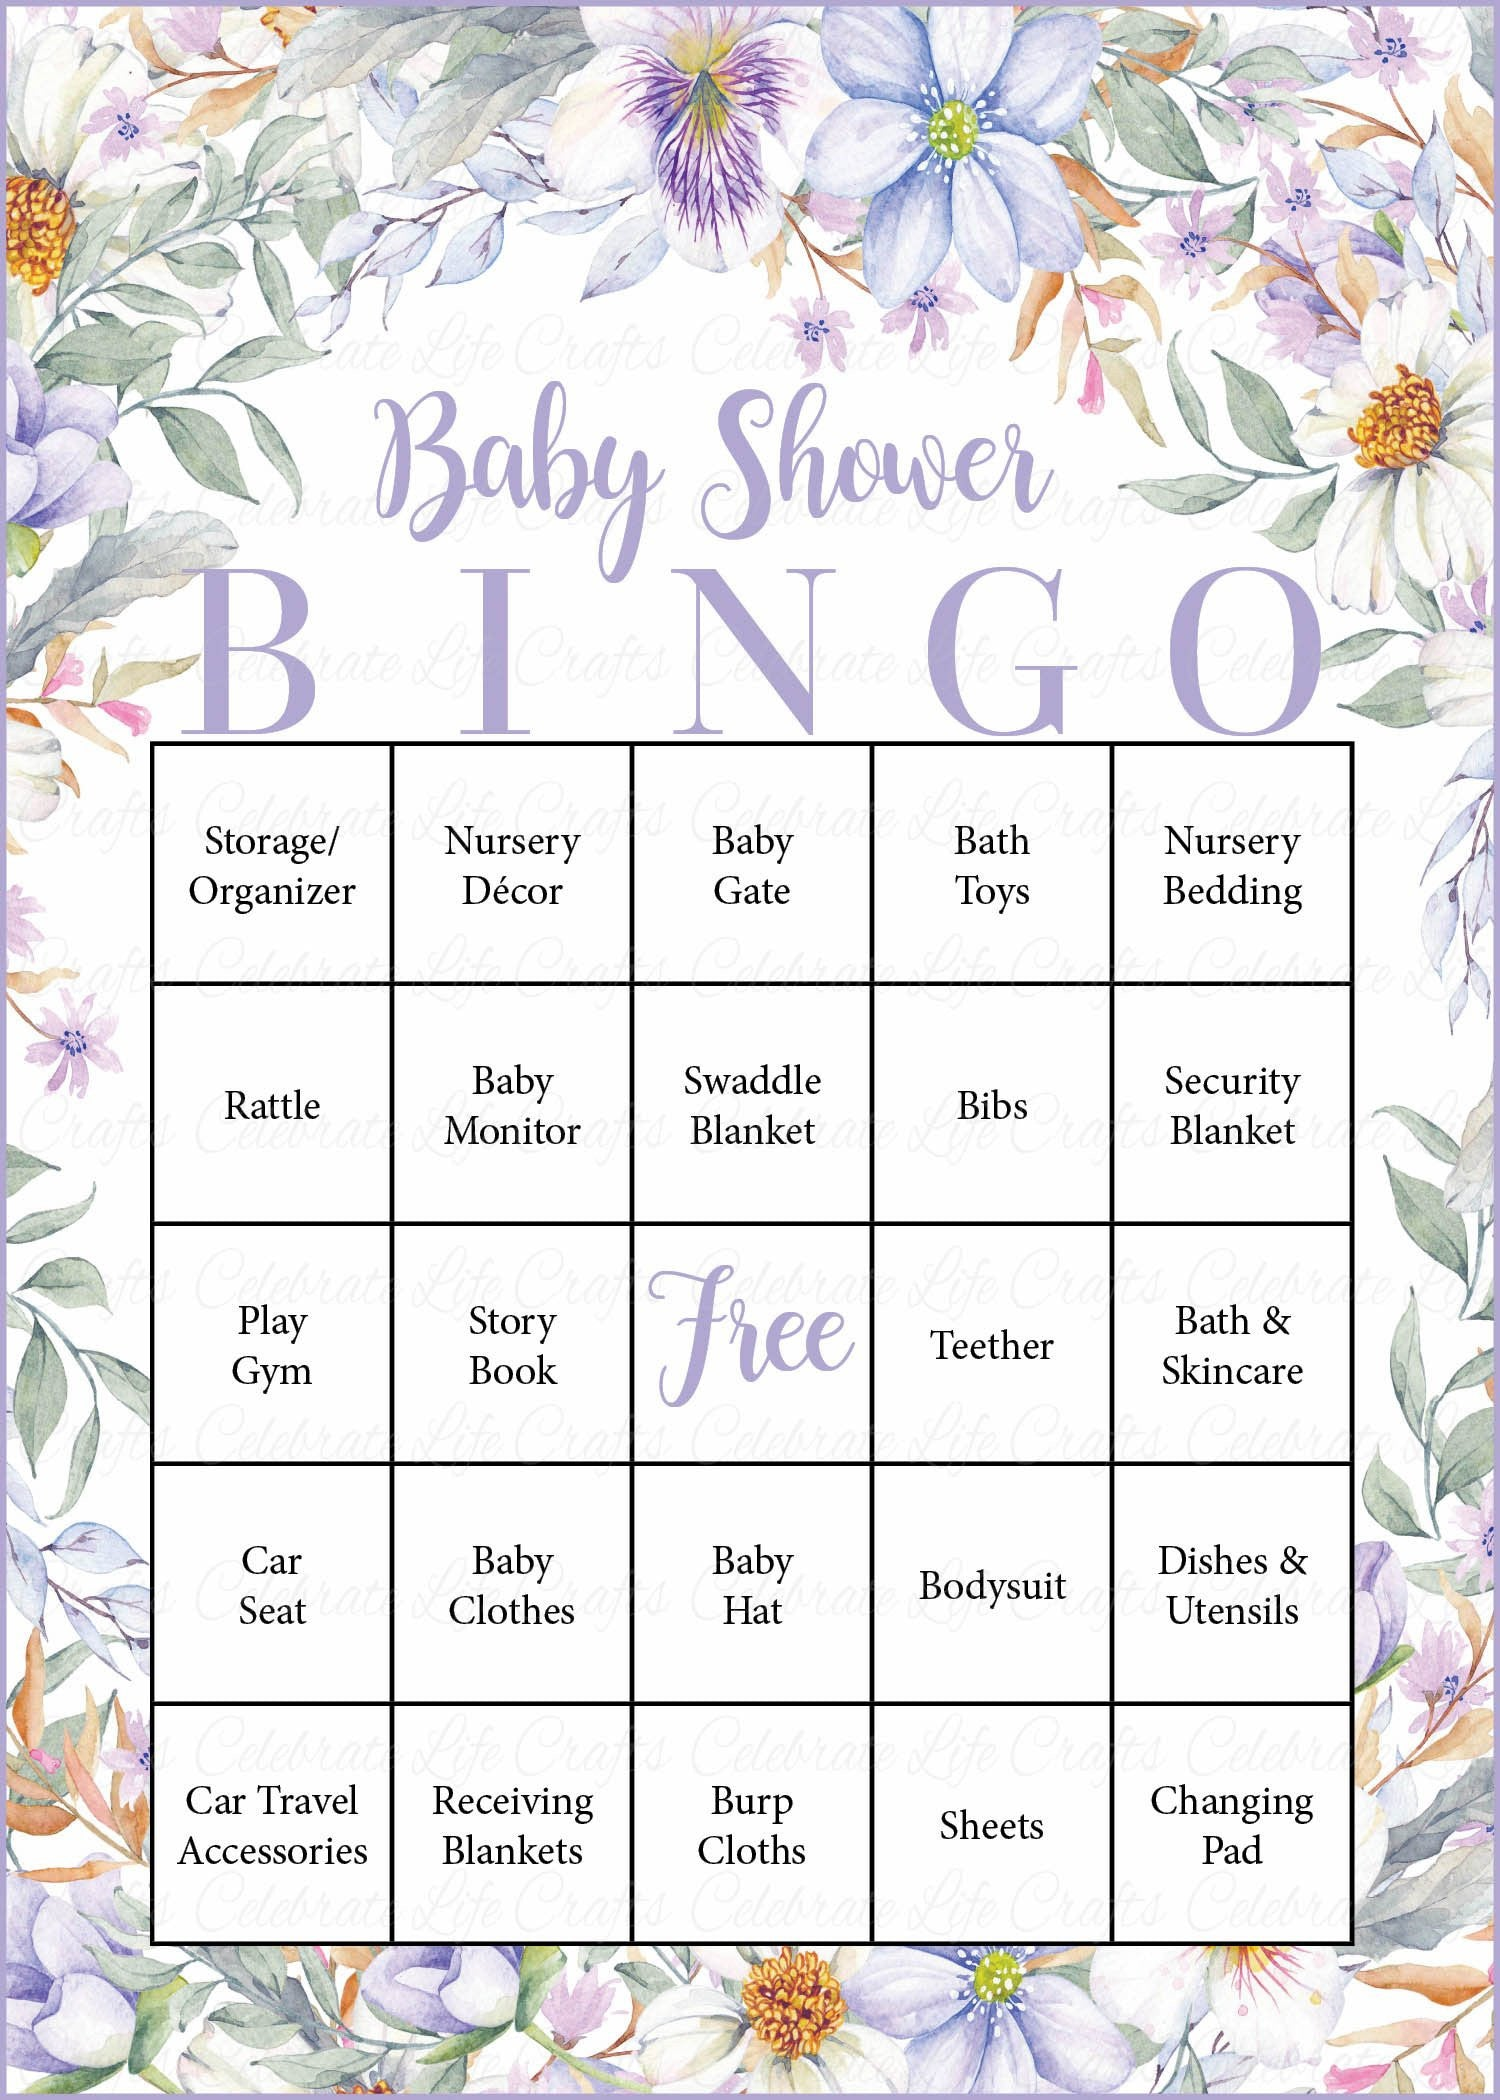 Garden baby shower game download for girl lavender floral baby floral baby bingo cards printable download prefilled garden baby shower game for girl lavender floral b33002 solutioingenieria Gallery